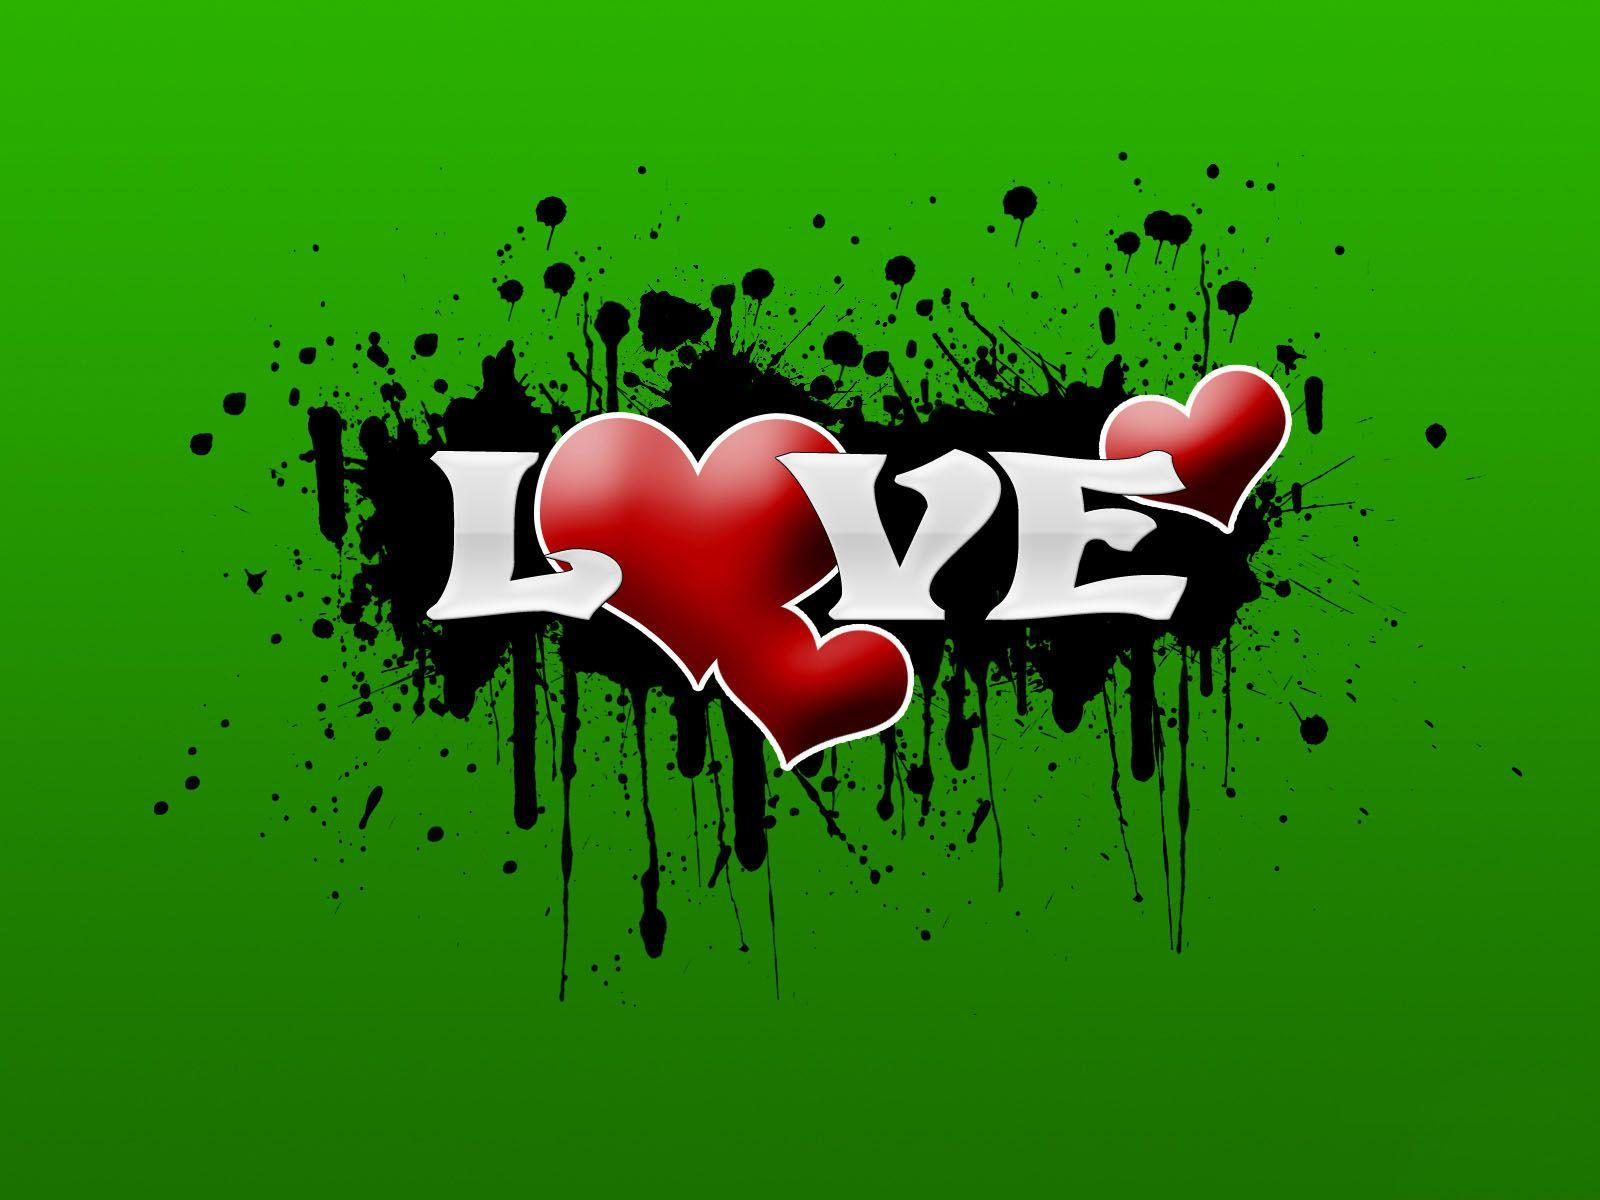 Gm Wallpaper For Love : Love 3D Wallpapers - Wallpaper cave